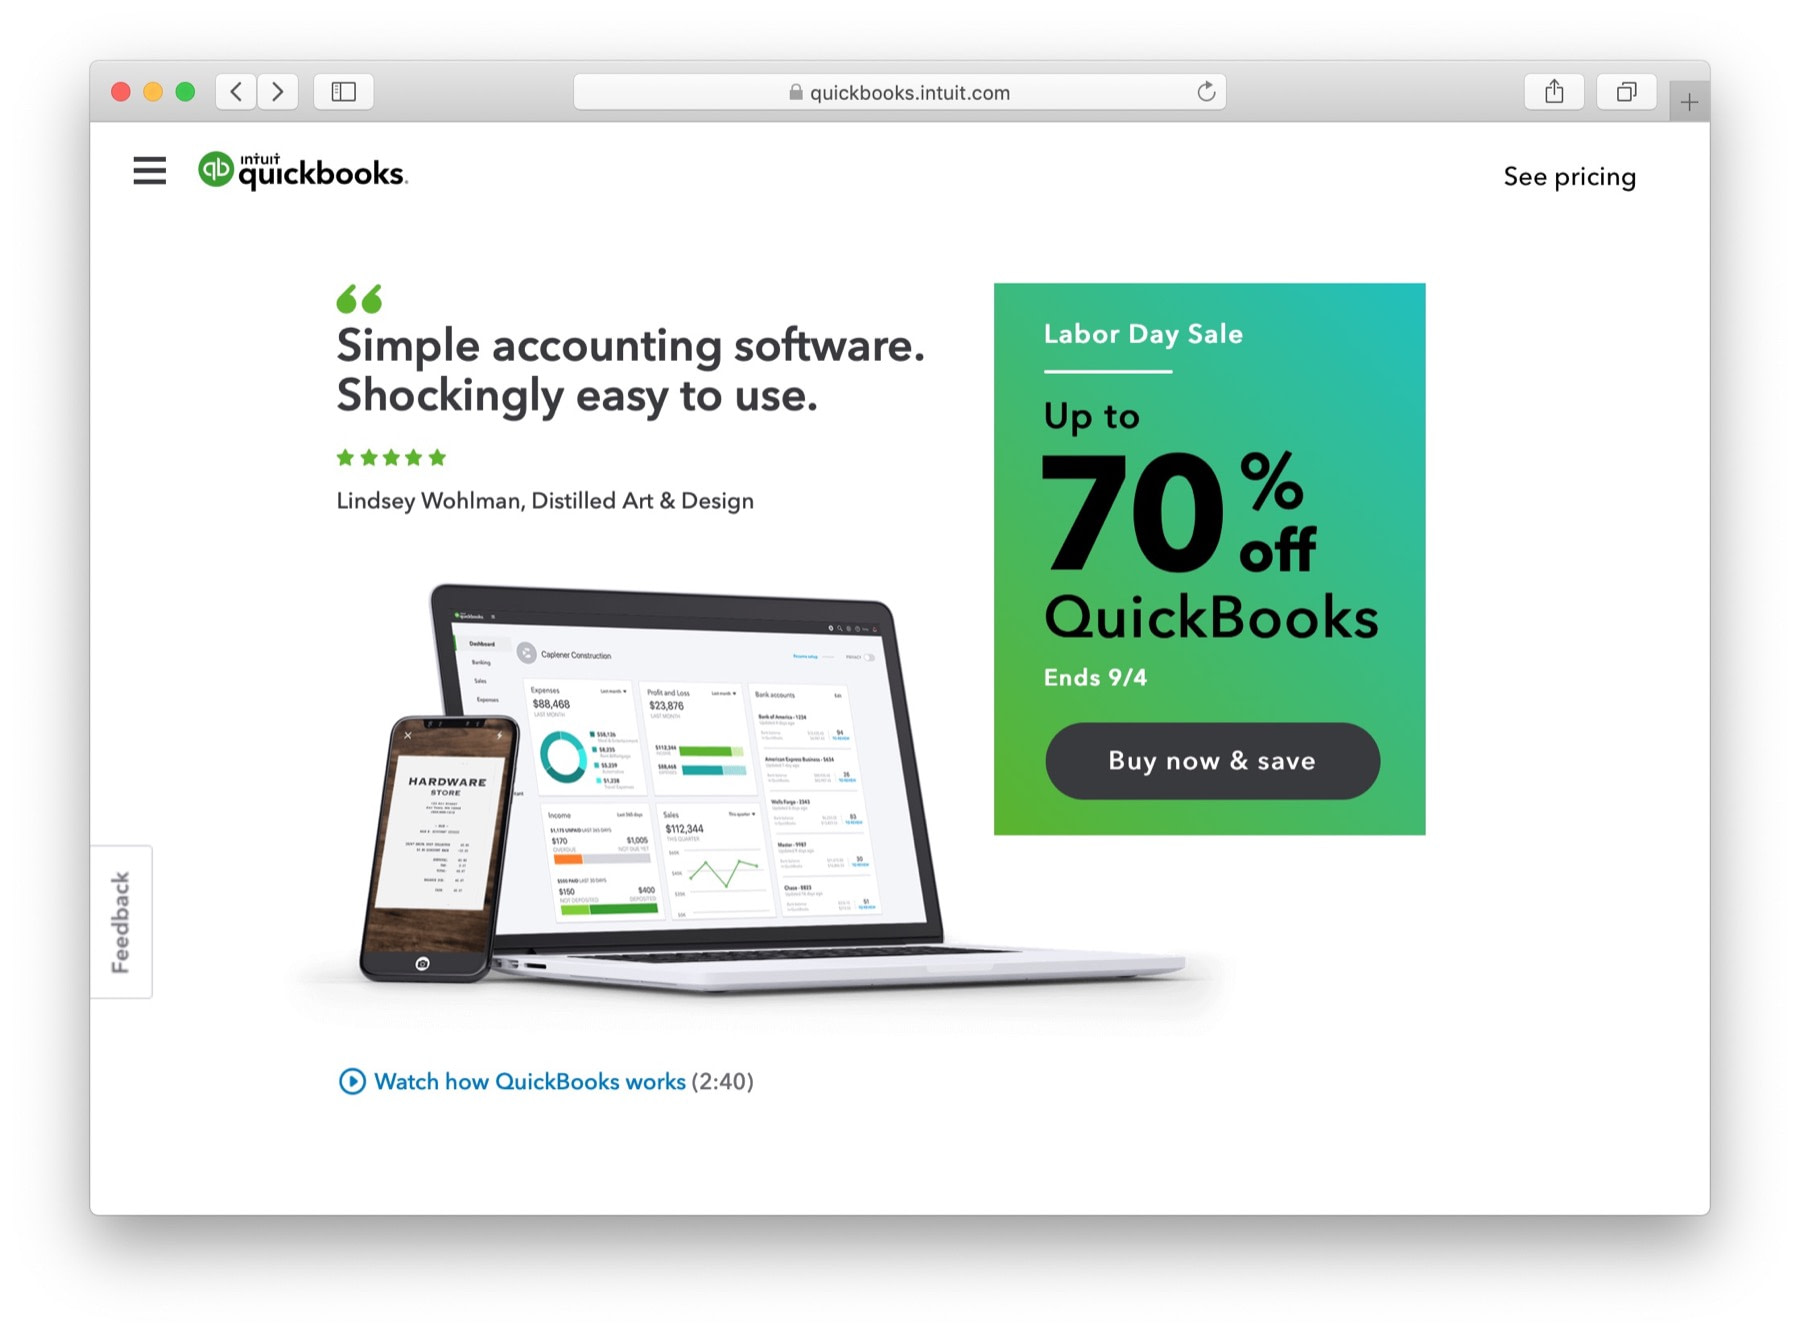 quickbooks - best accounting software for small business